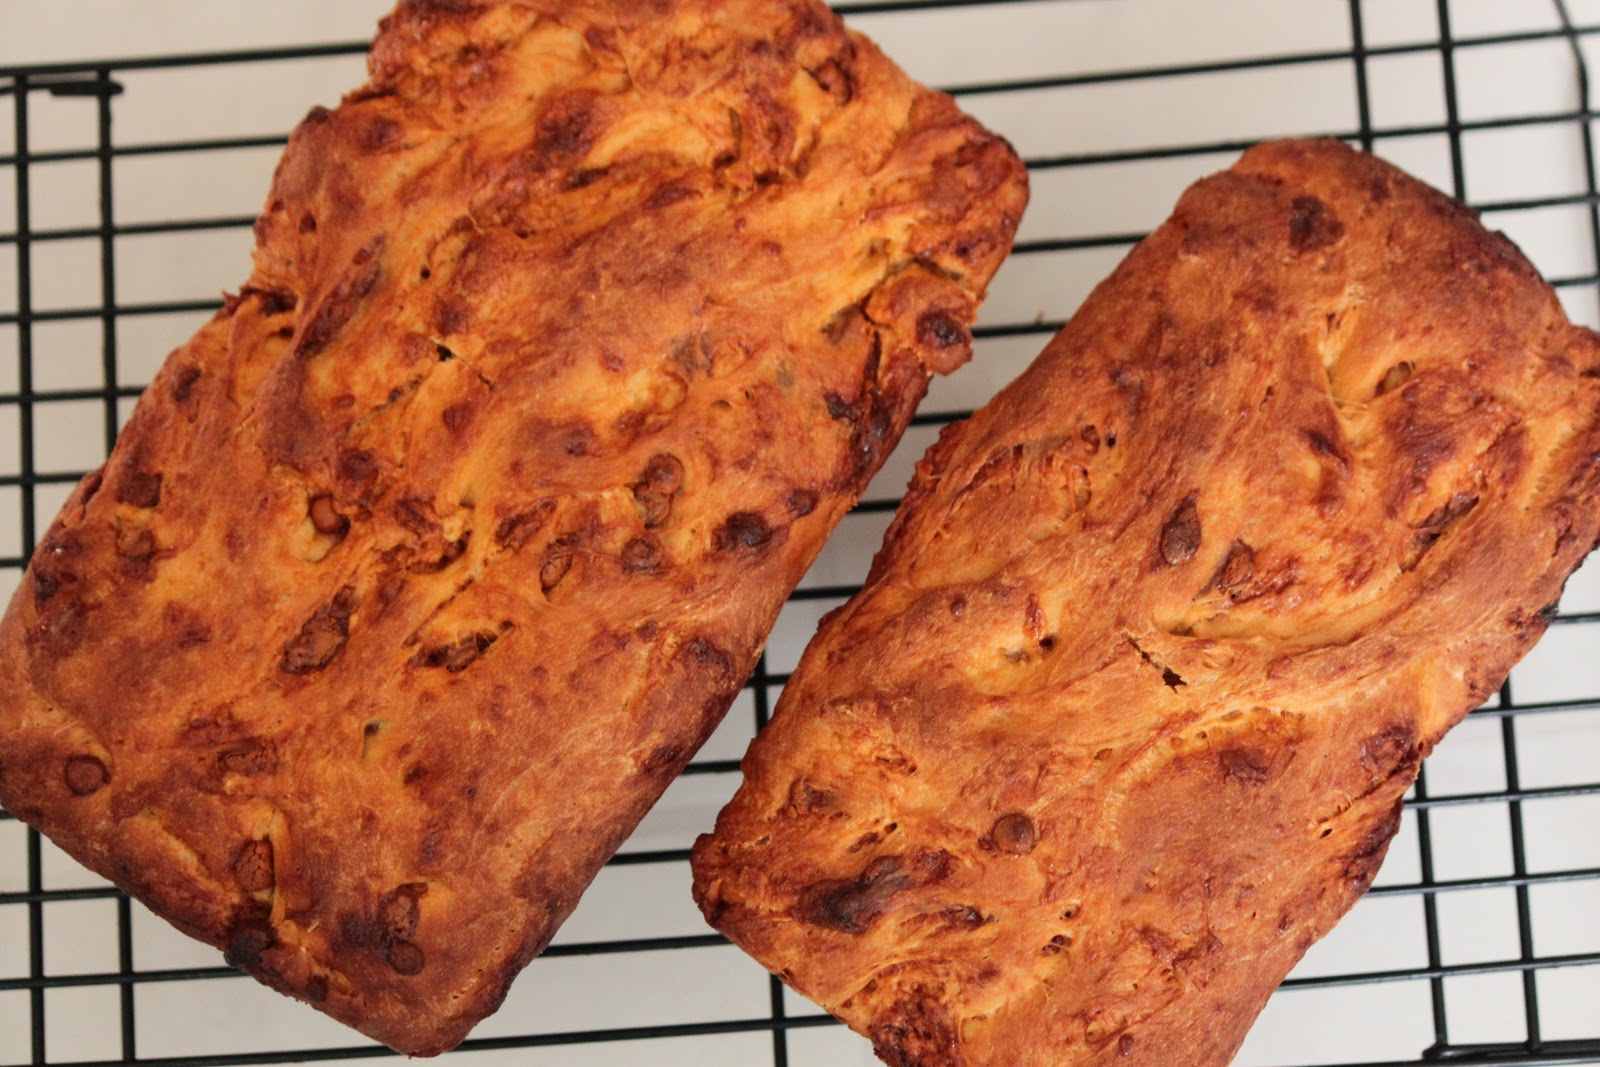 Smashed Peas and Carrots: Cinnamon Chip Bread